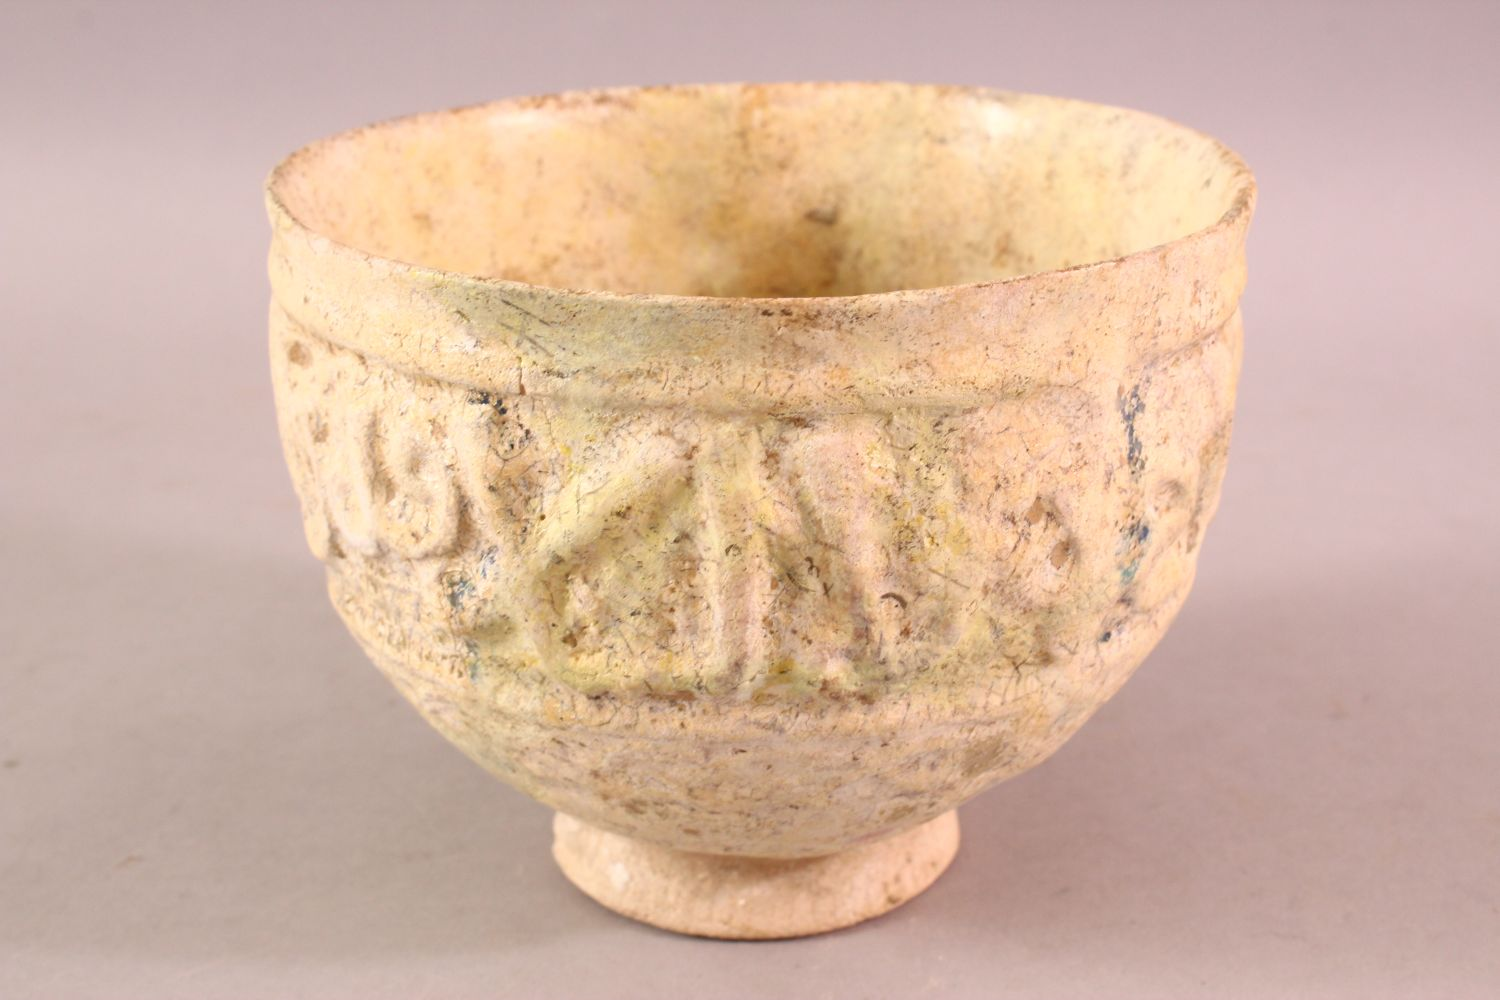 A 12TH CENTURY KUFIC SCRIPT GLAZED POTTERY BOWL, the exterior with moulded script, 15cm diameter, - Image 2 of 6